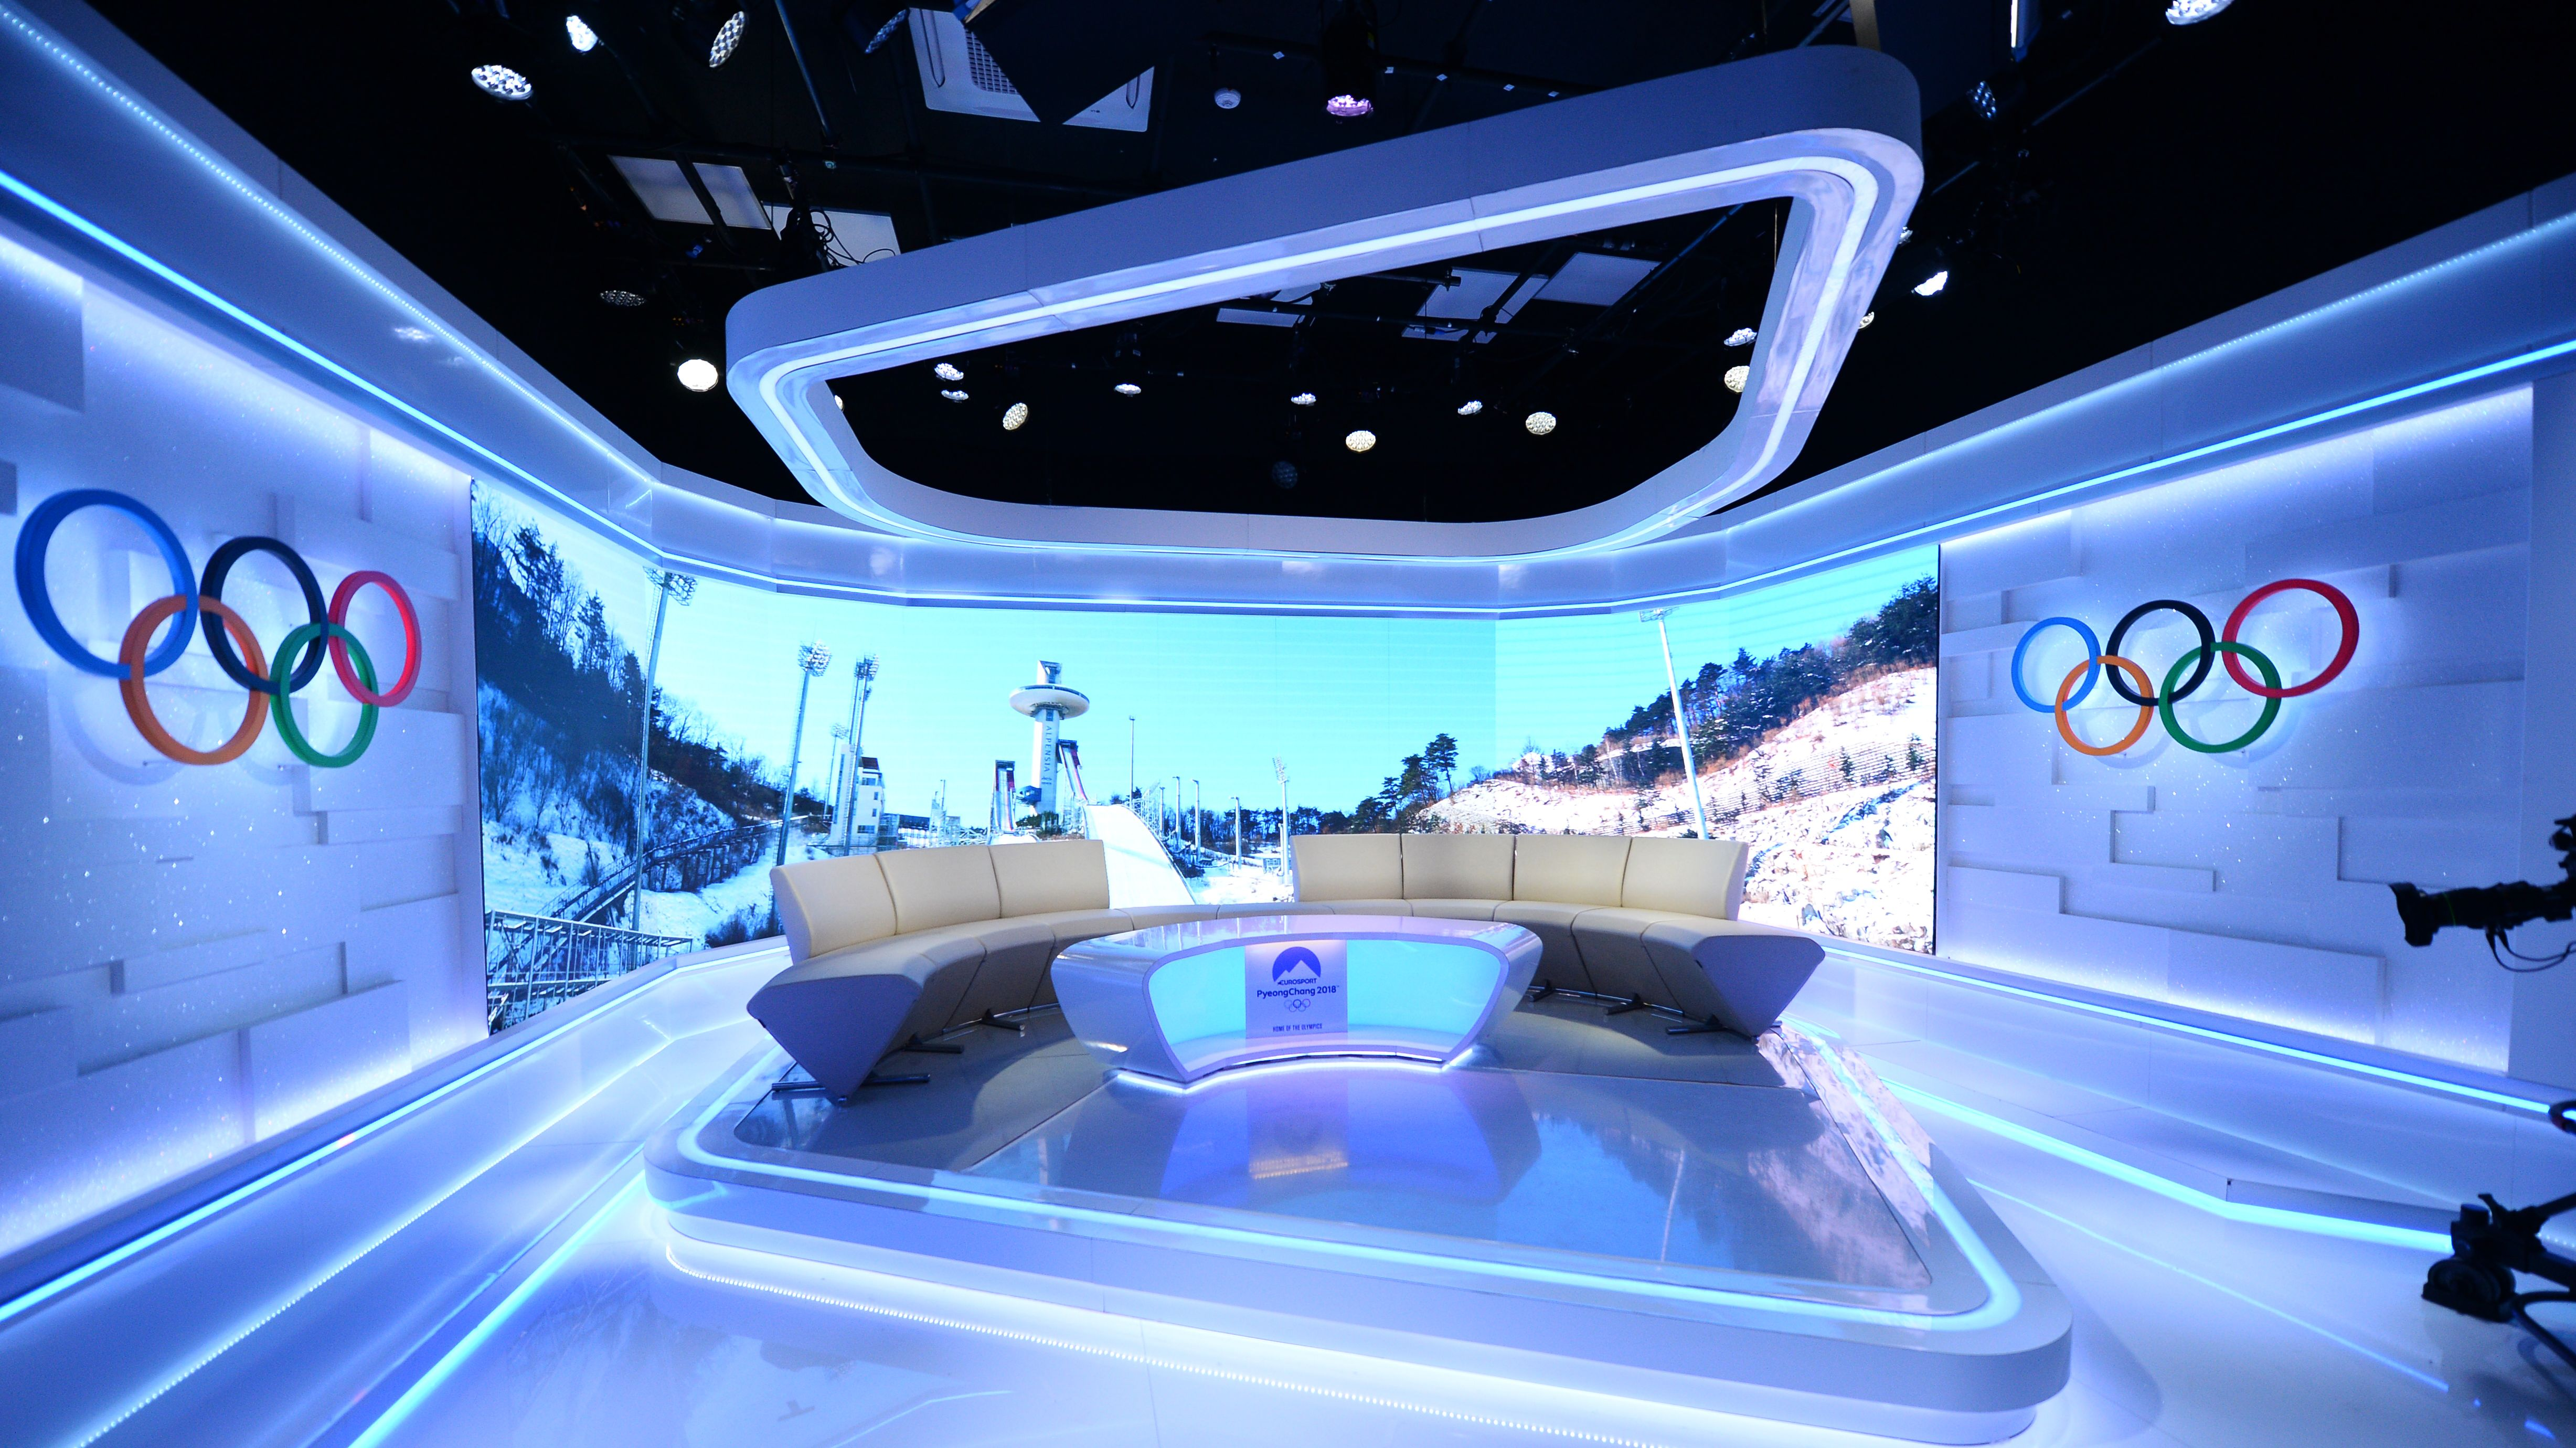 Das Eurosport Studio im International Broadcasting Center in Pyeongchang